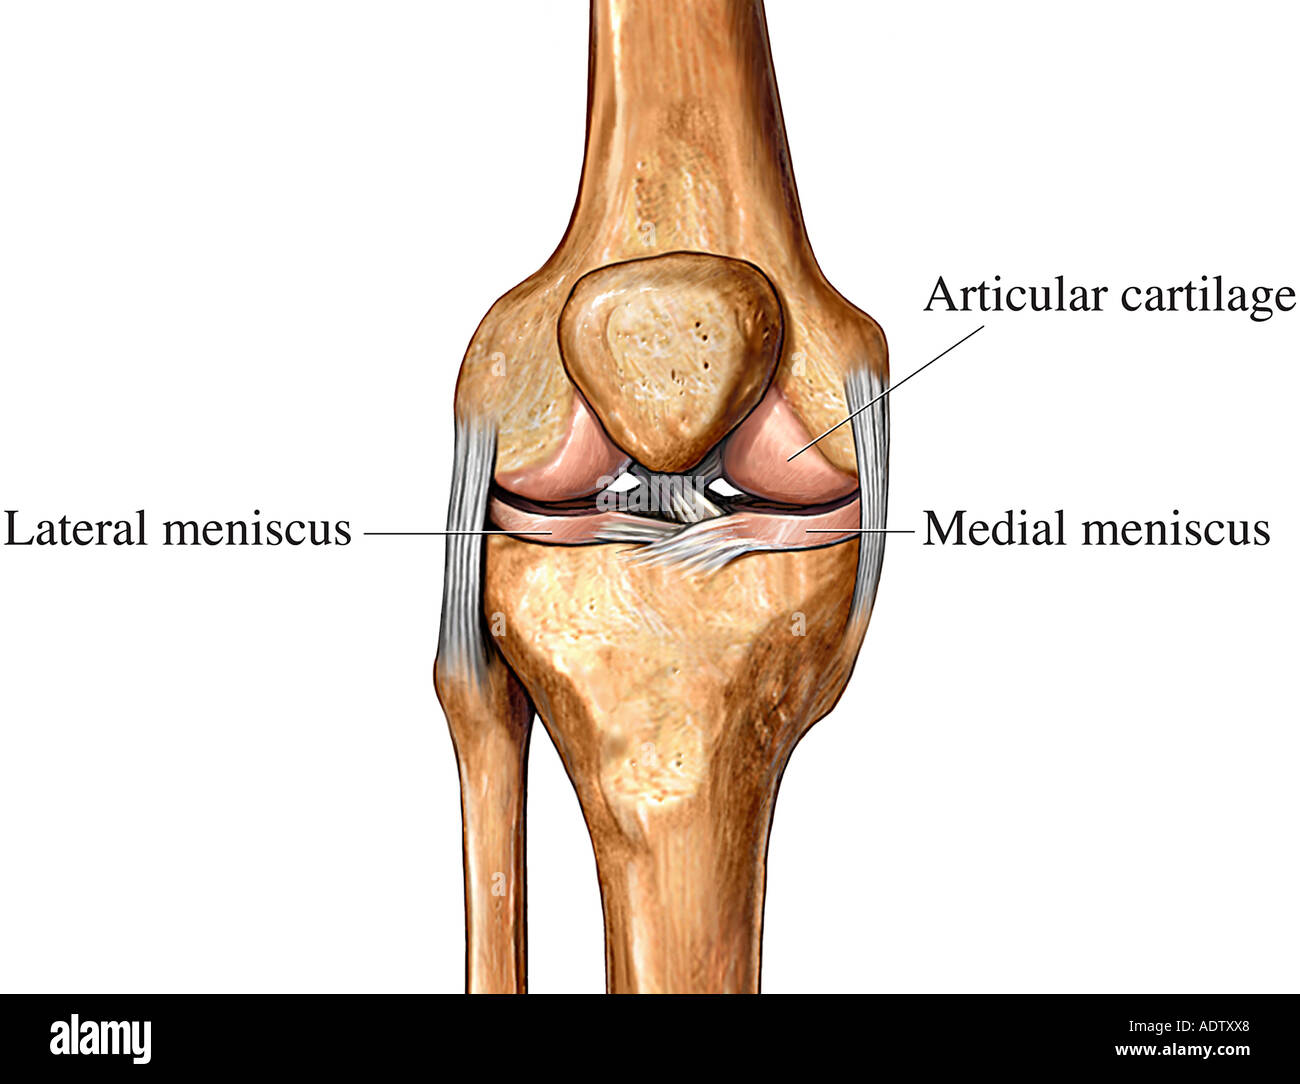 Cartilage of the Knee - Stock Image